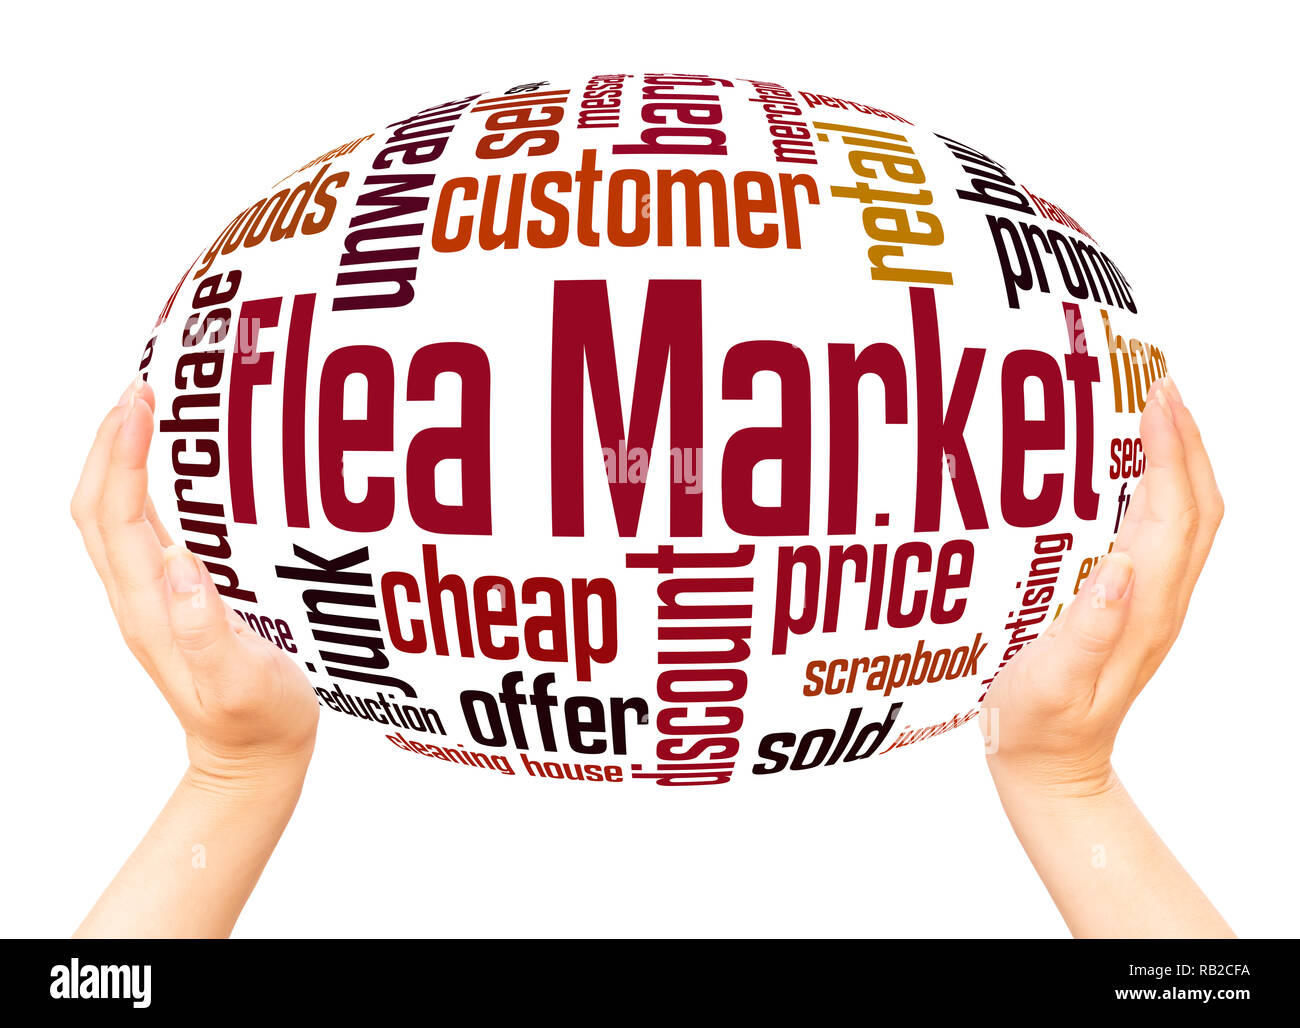 Flea Market word cloud hand sphere concept on white background. - Stock Image